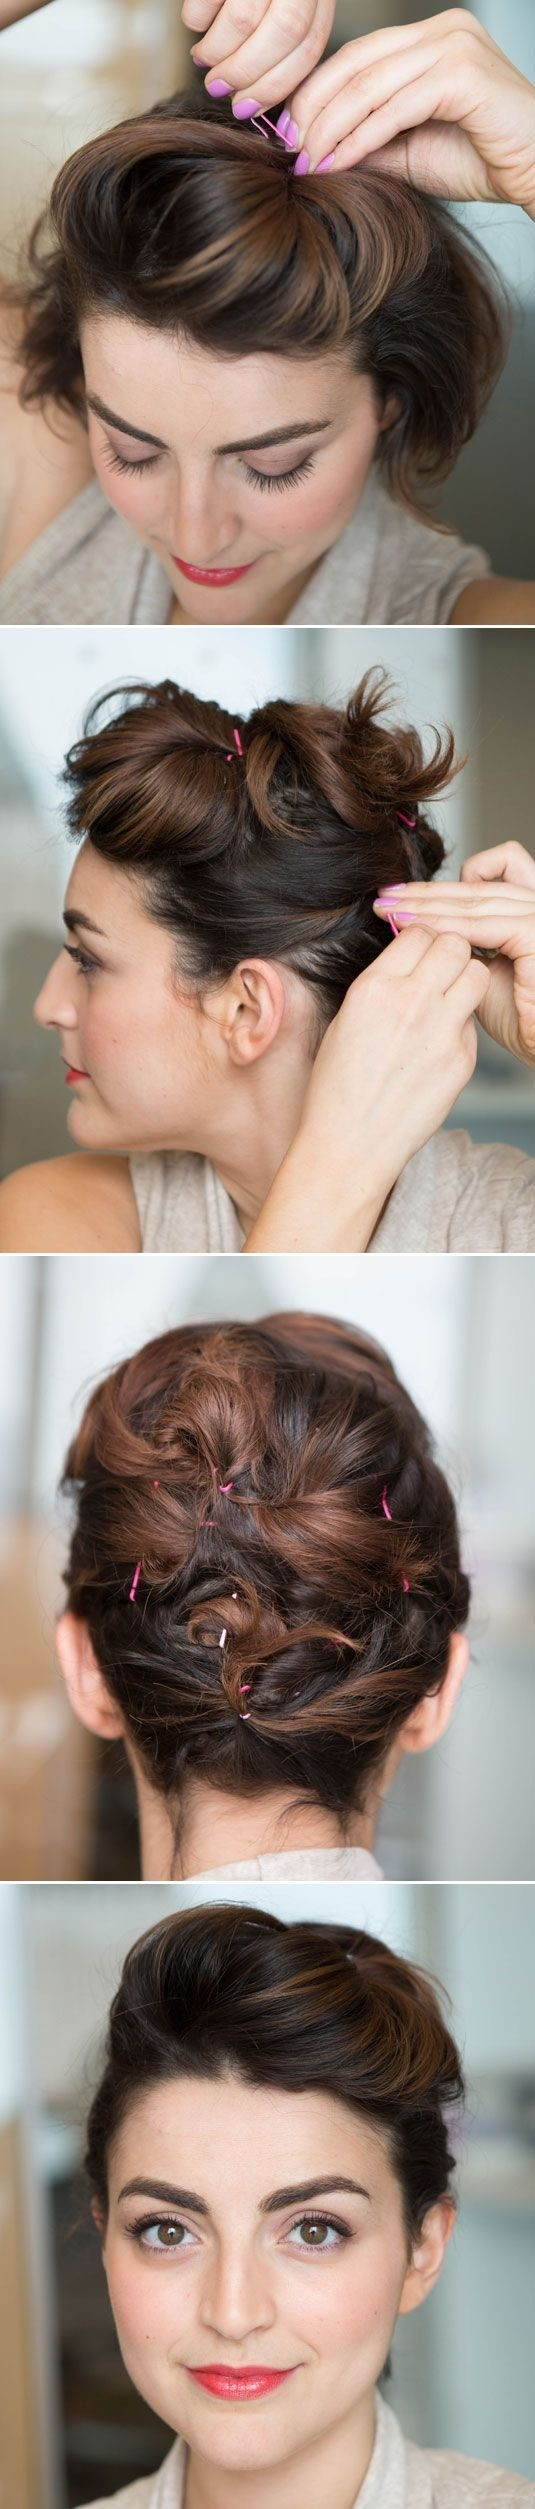 Updo Hairstyle Ideas for Short Hair